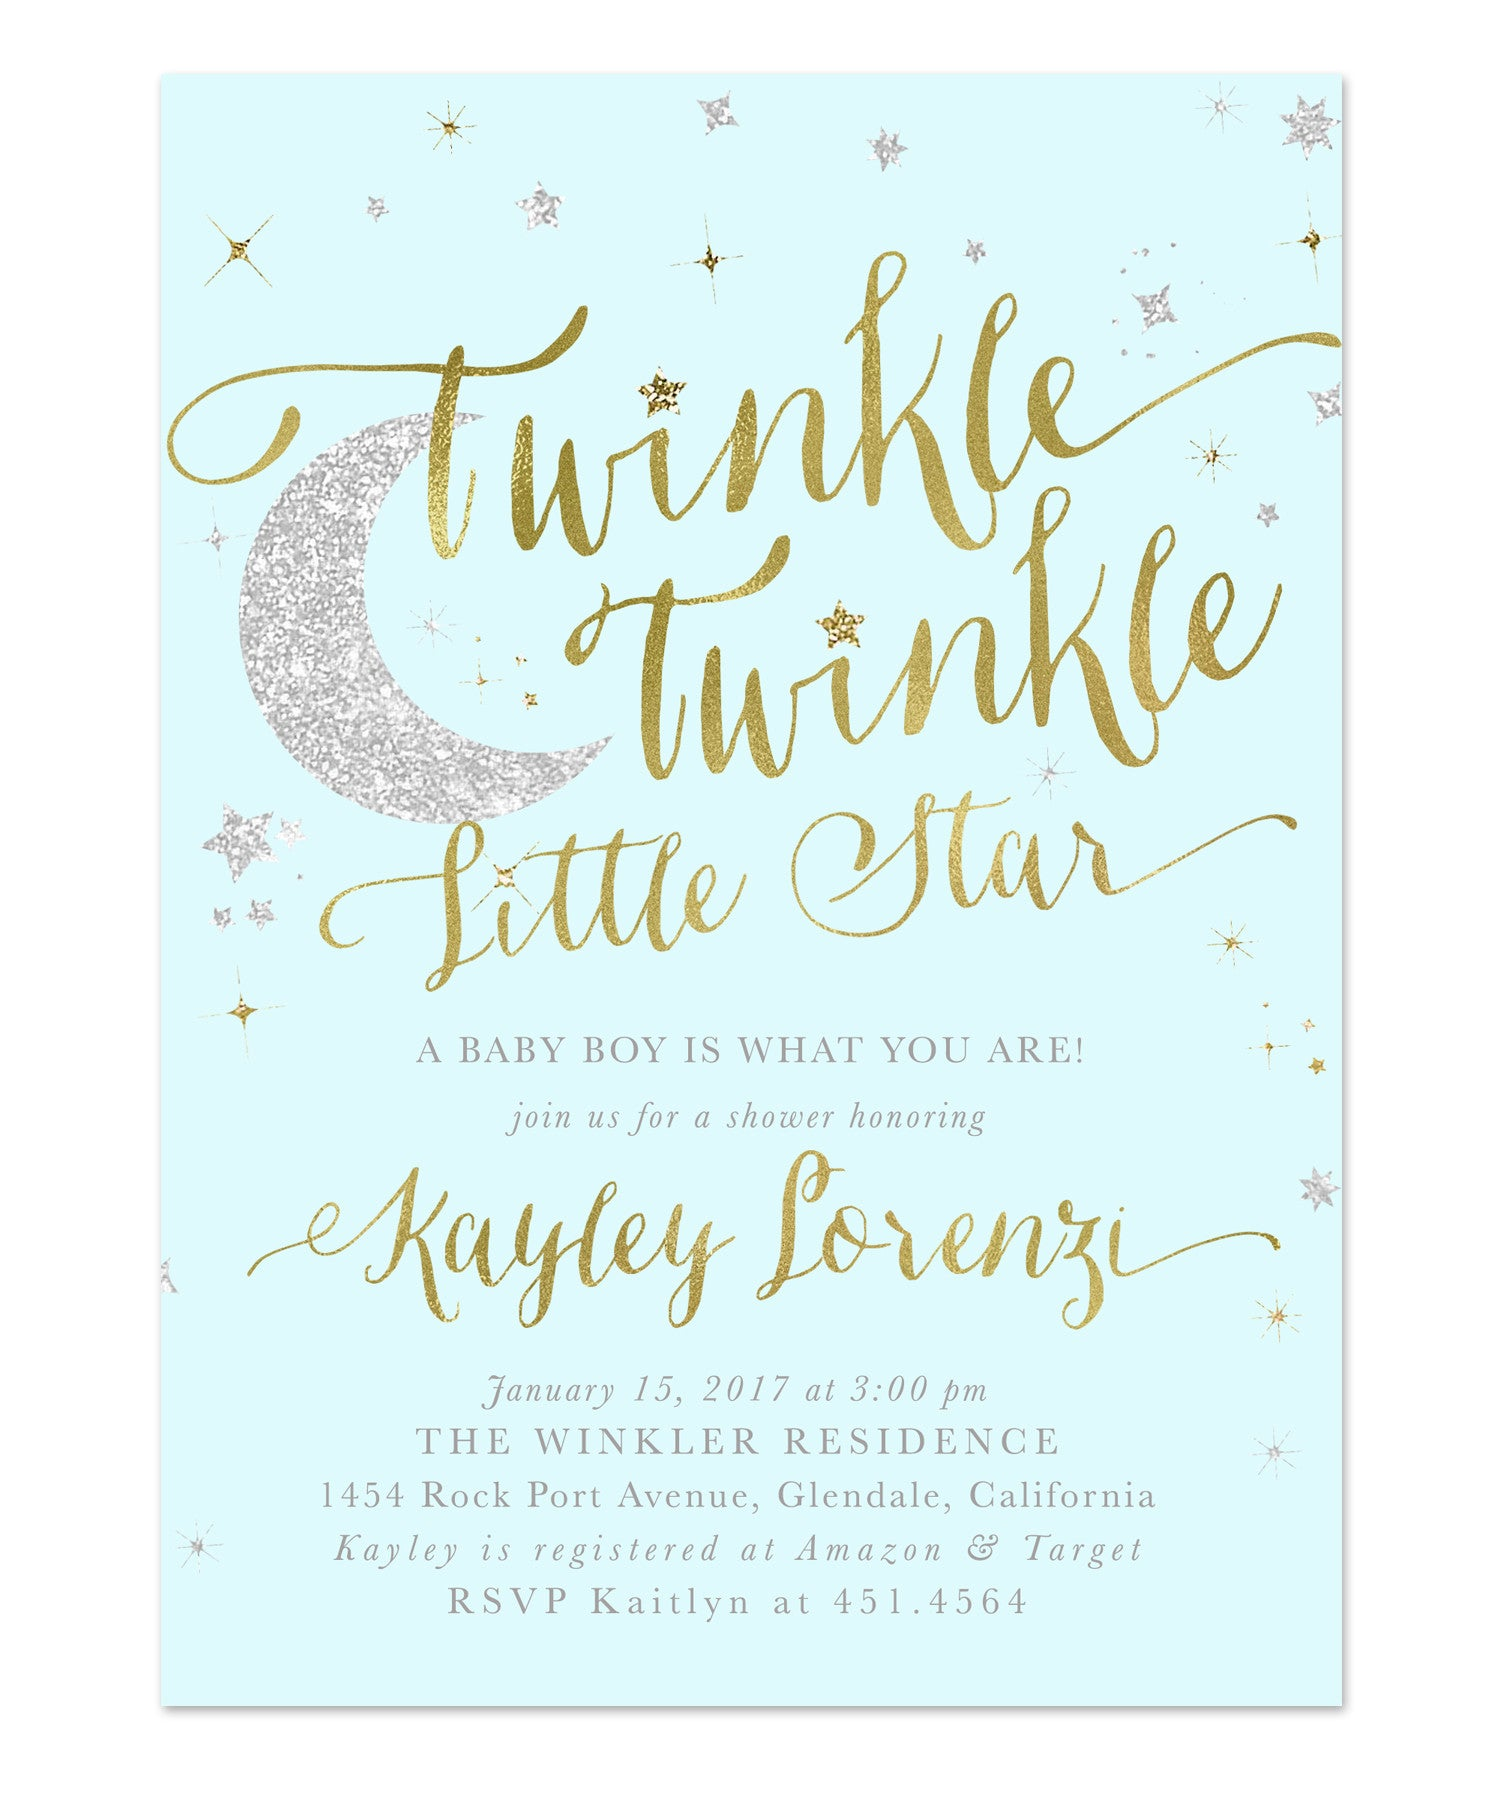 Twinkle Twinkle Little Star Boy Baby Shower Invitation